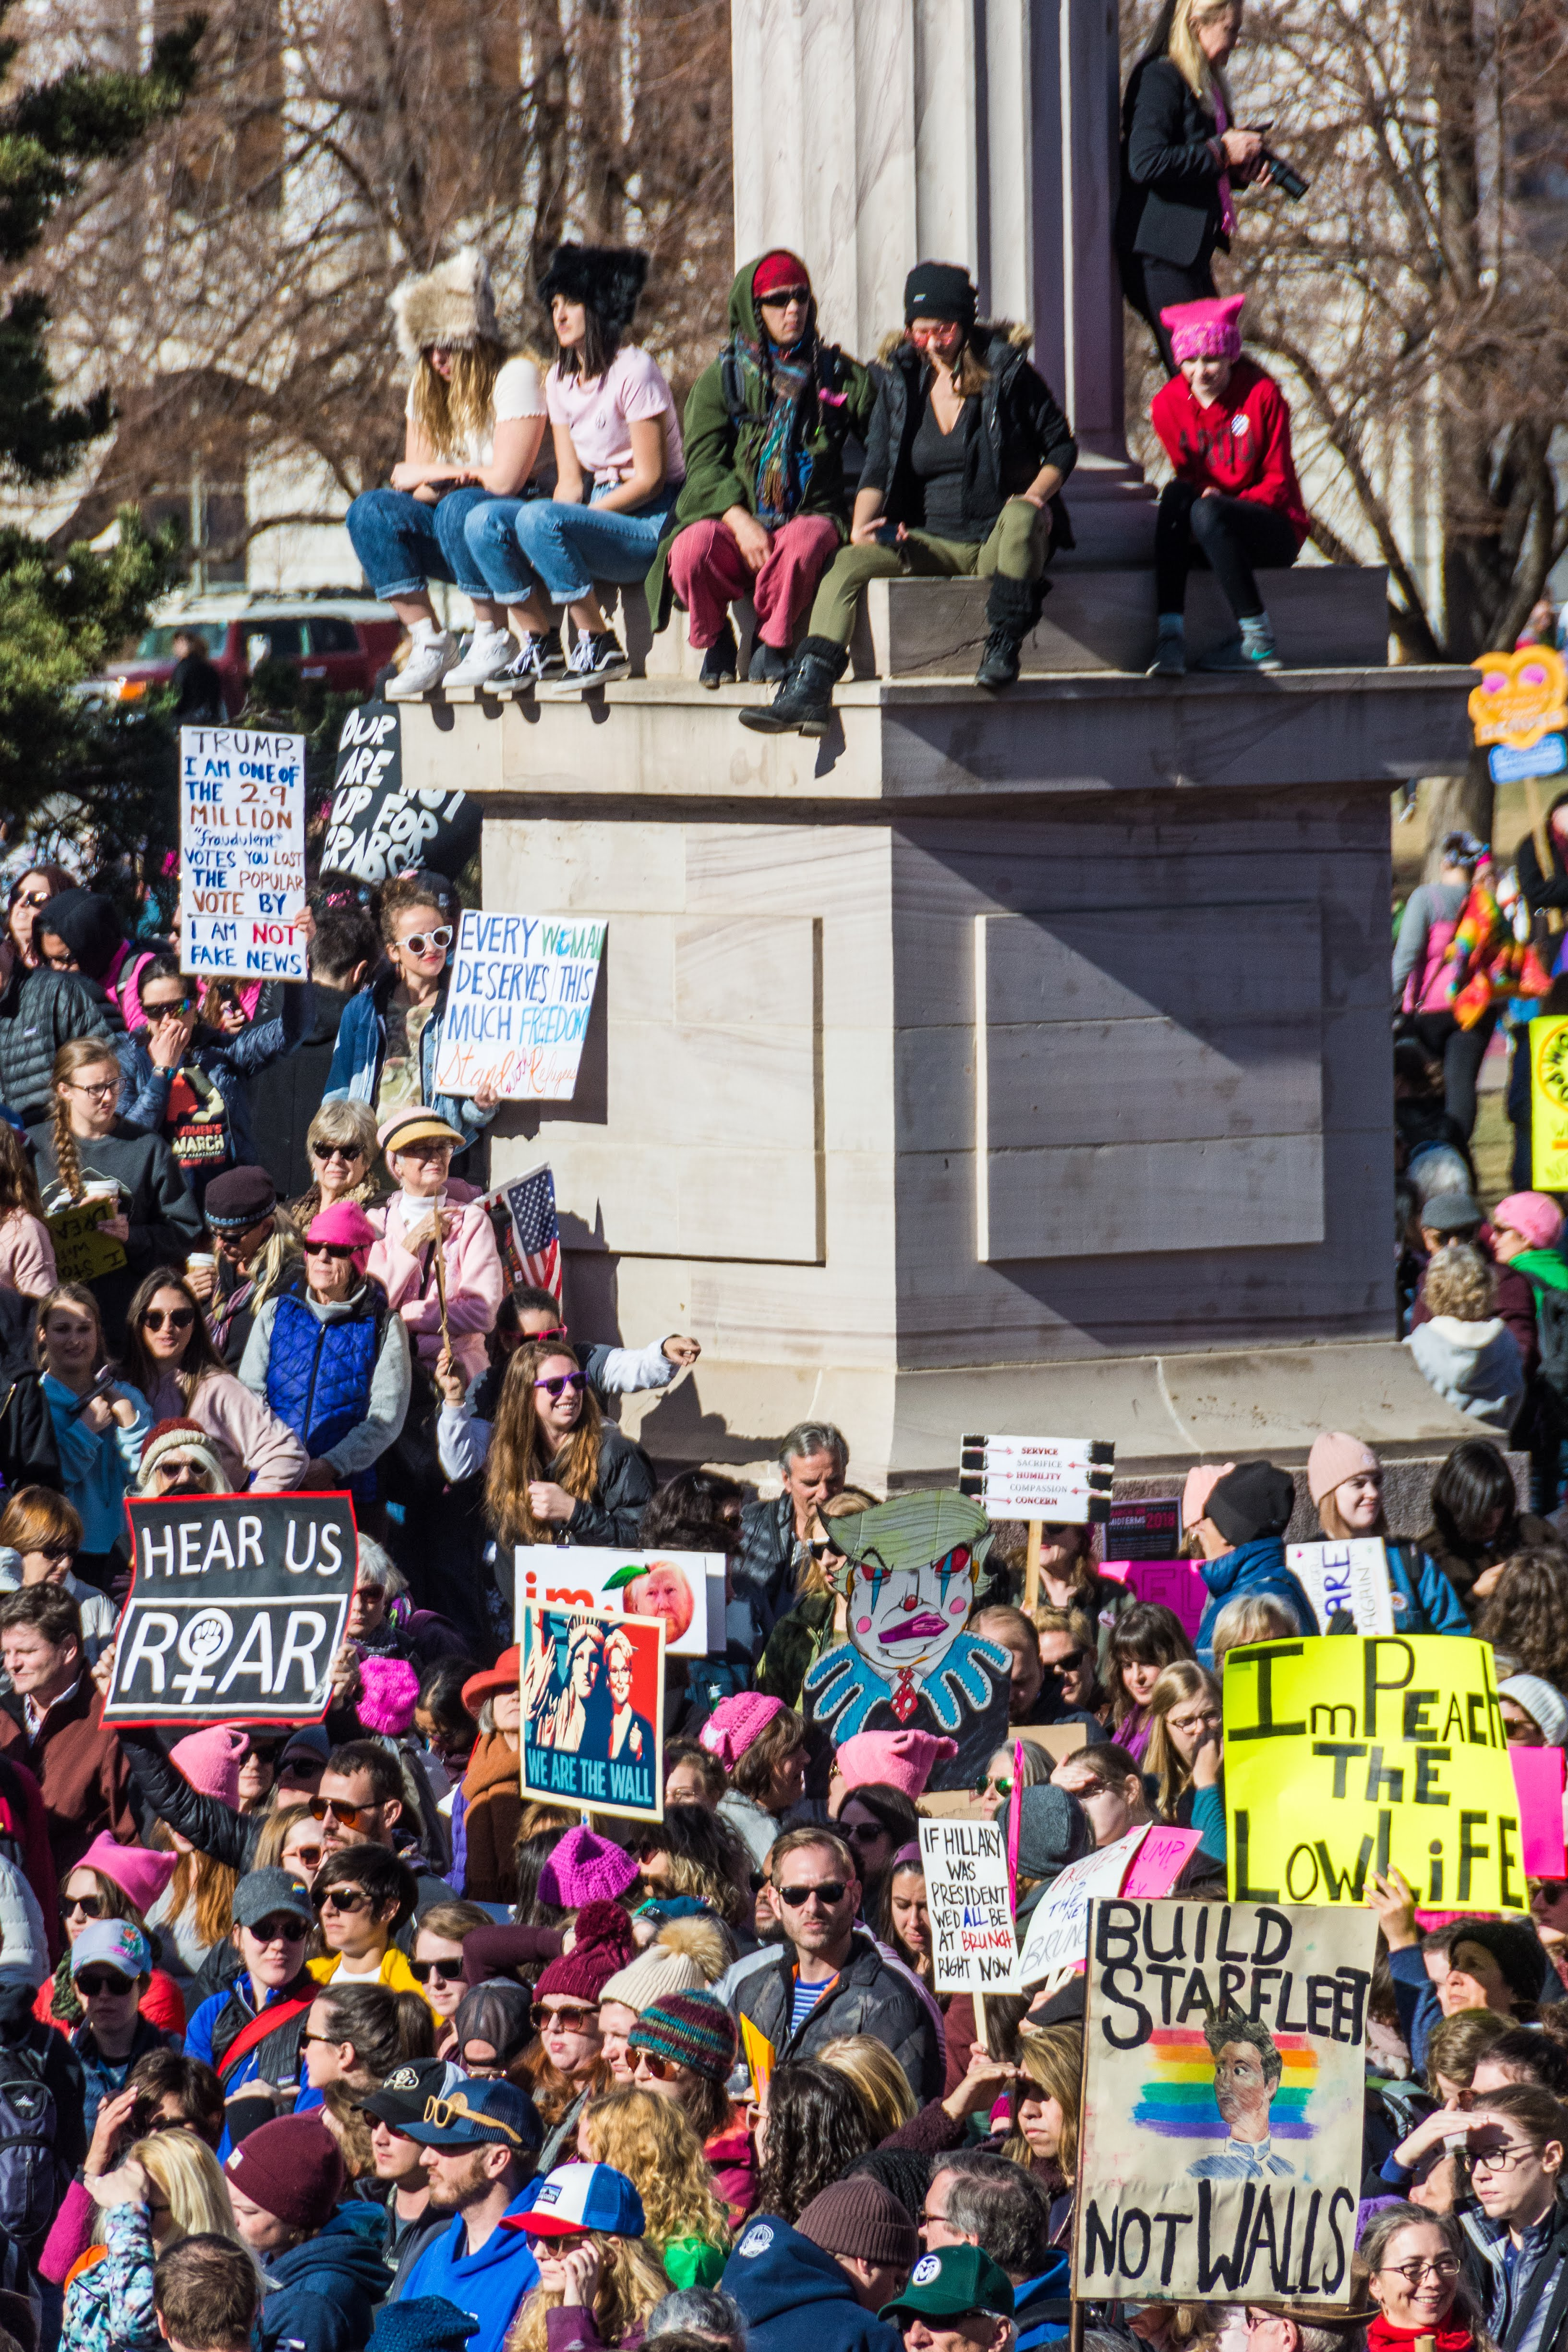 Diverse groups protest at Women's March in Denver